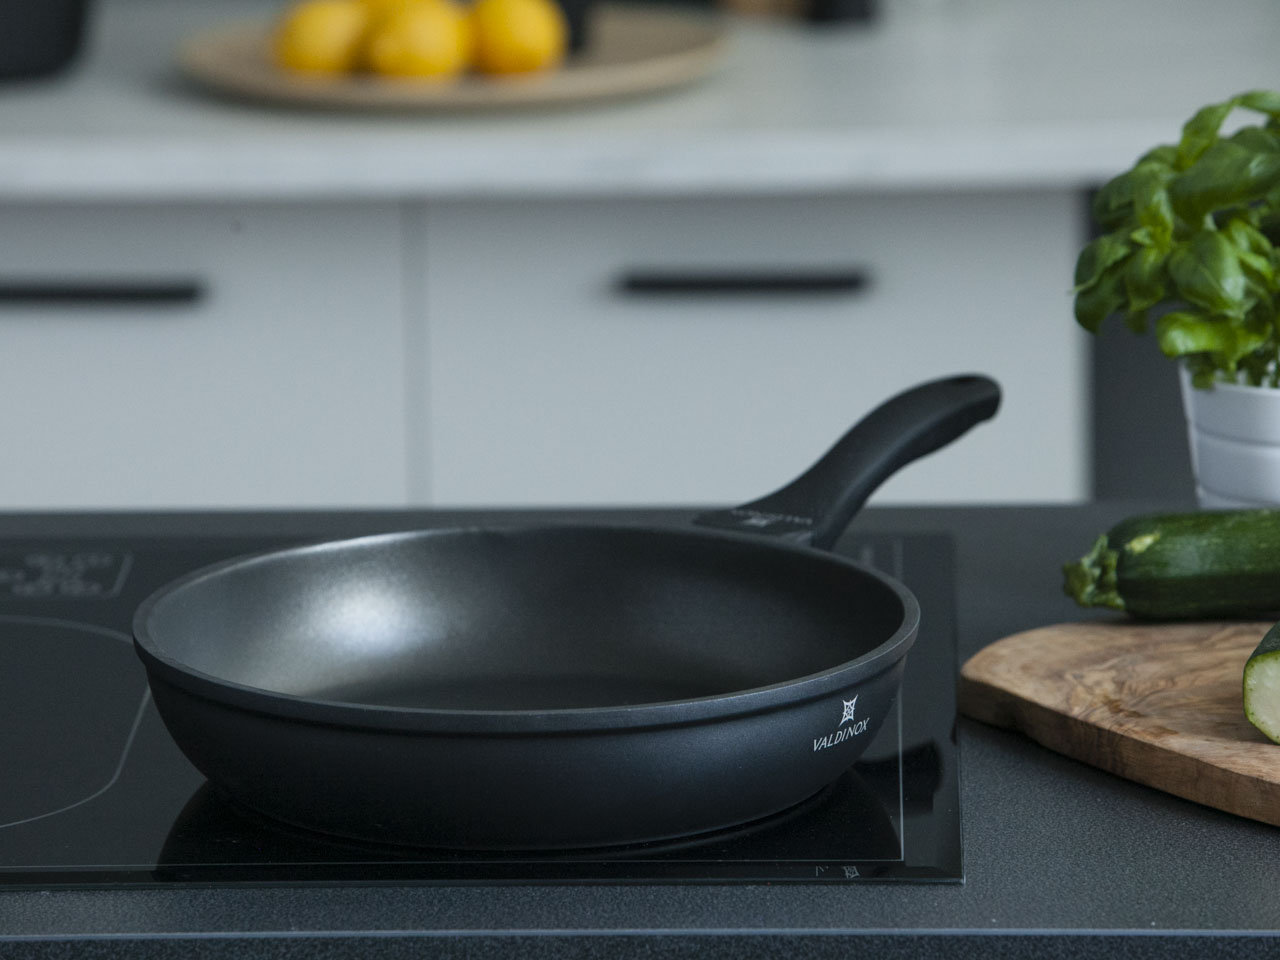 Valdinox expert frying pan 24cm